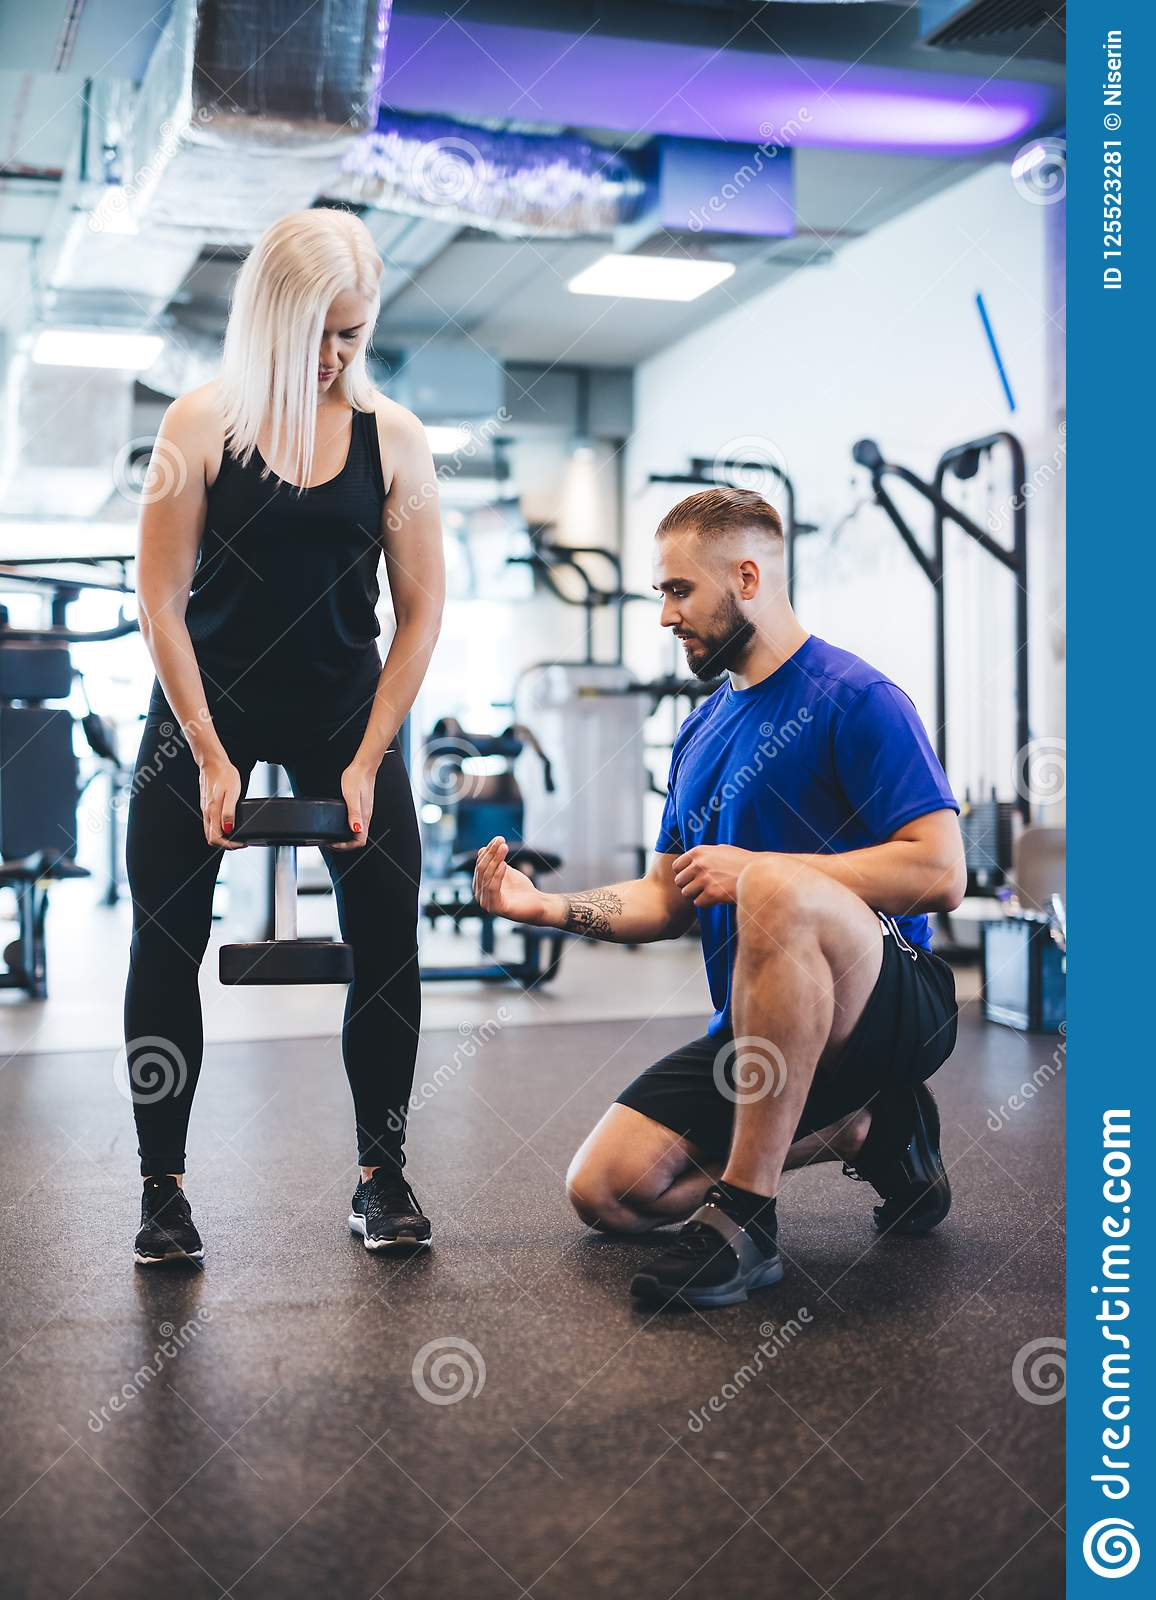 Woman exercising with personal trainer.